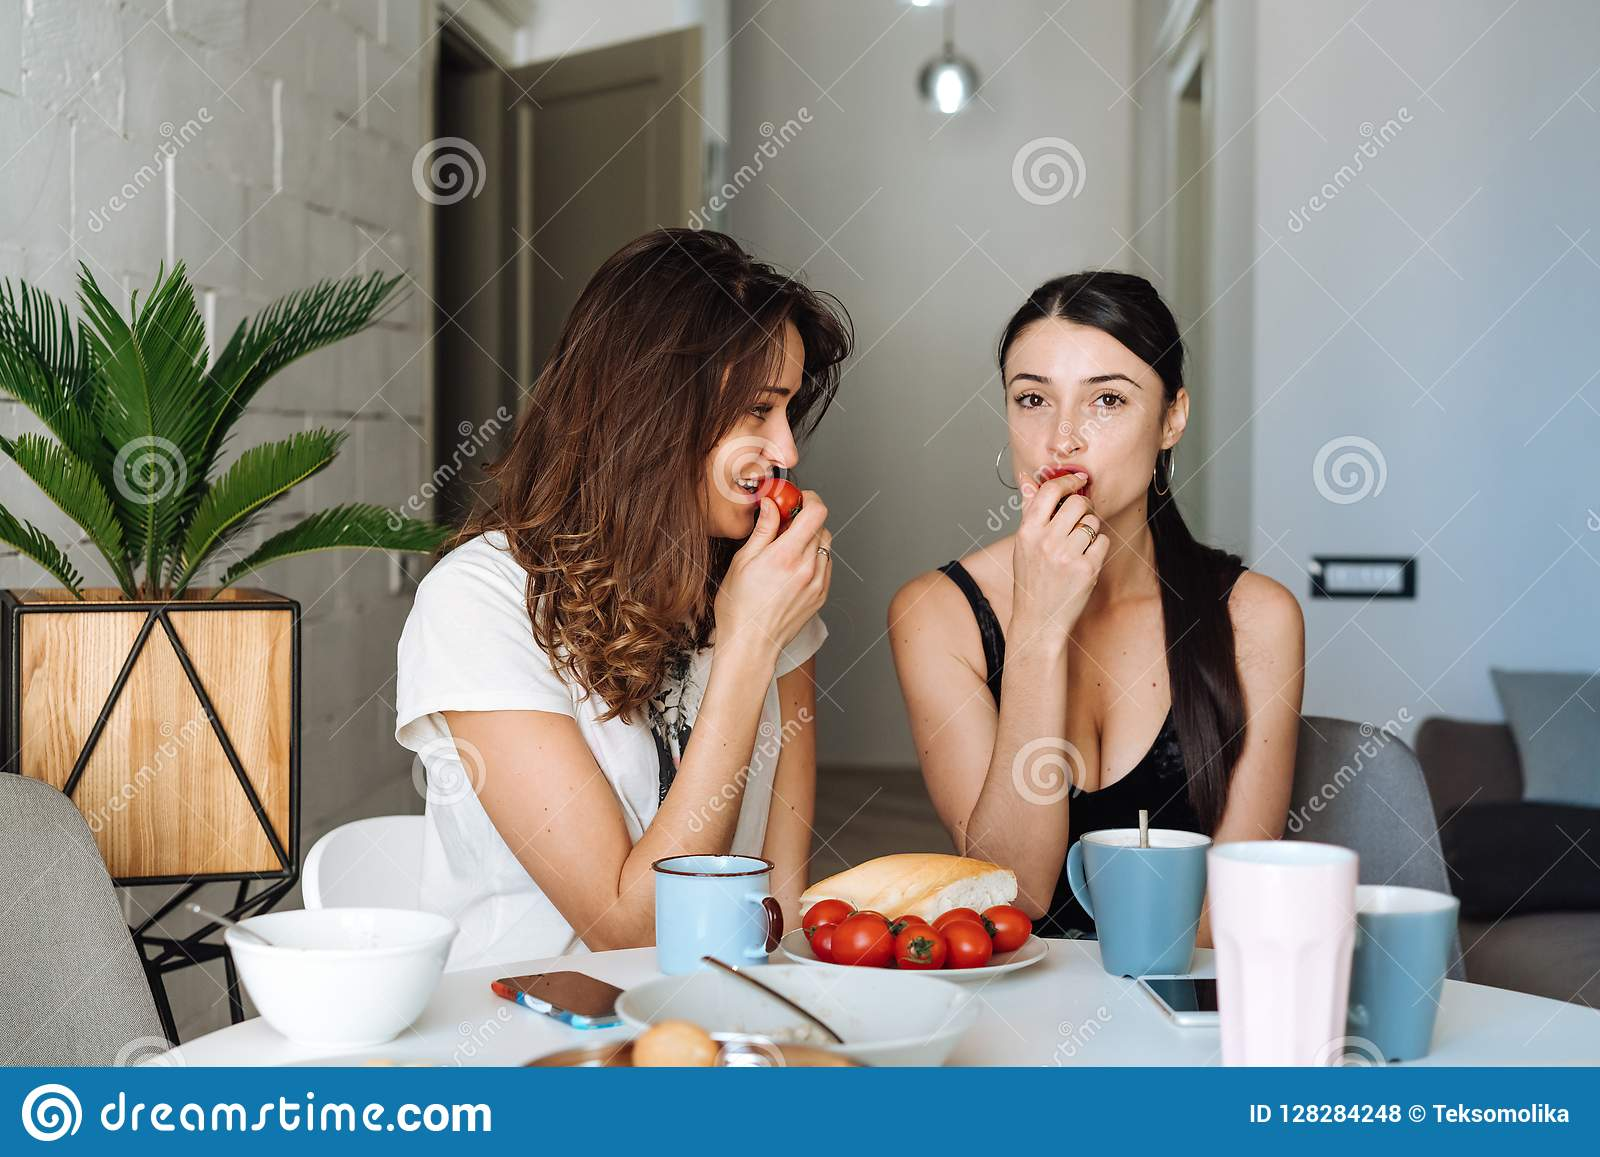 Two Woman Friends Breakfast In The Kitchen Stock Photo - Image of ... 52f971053